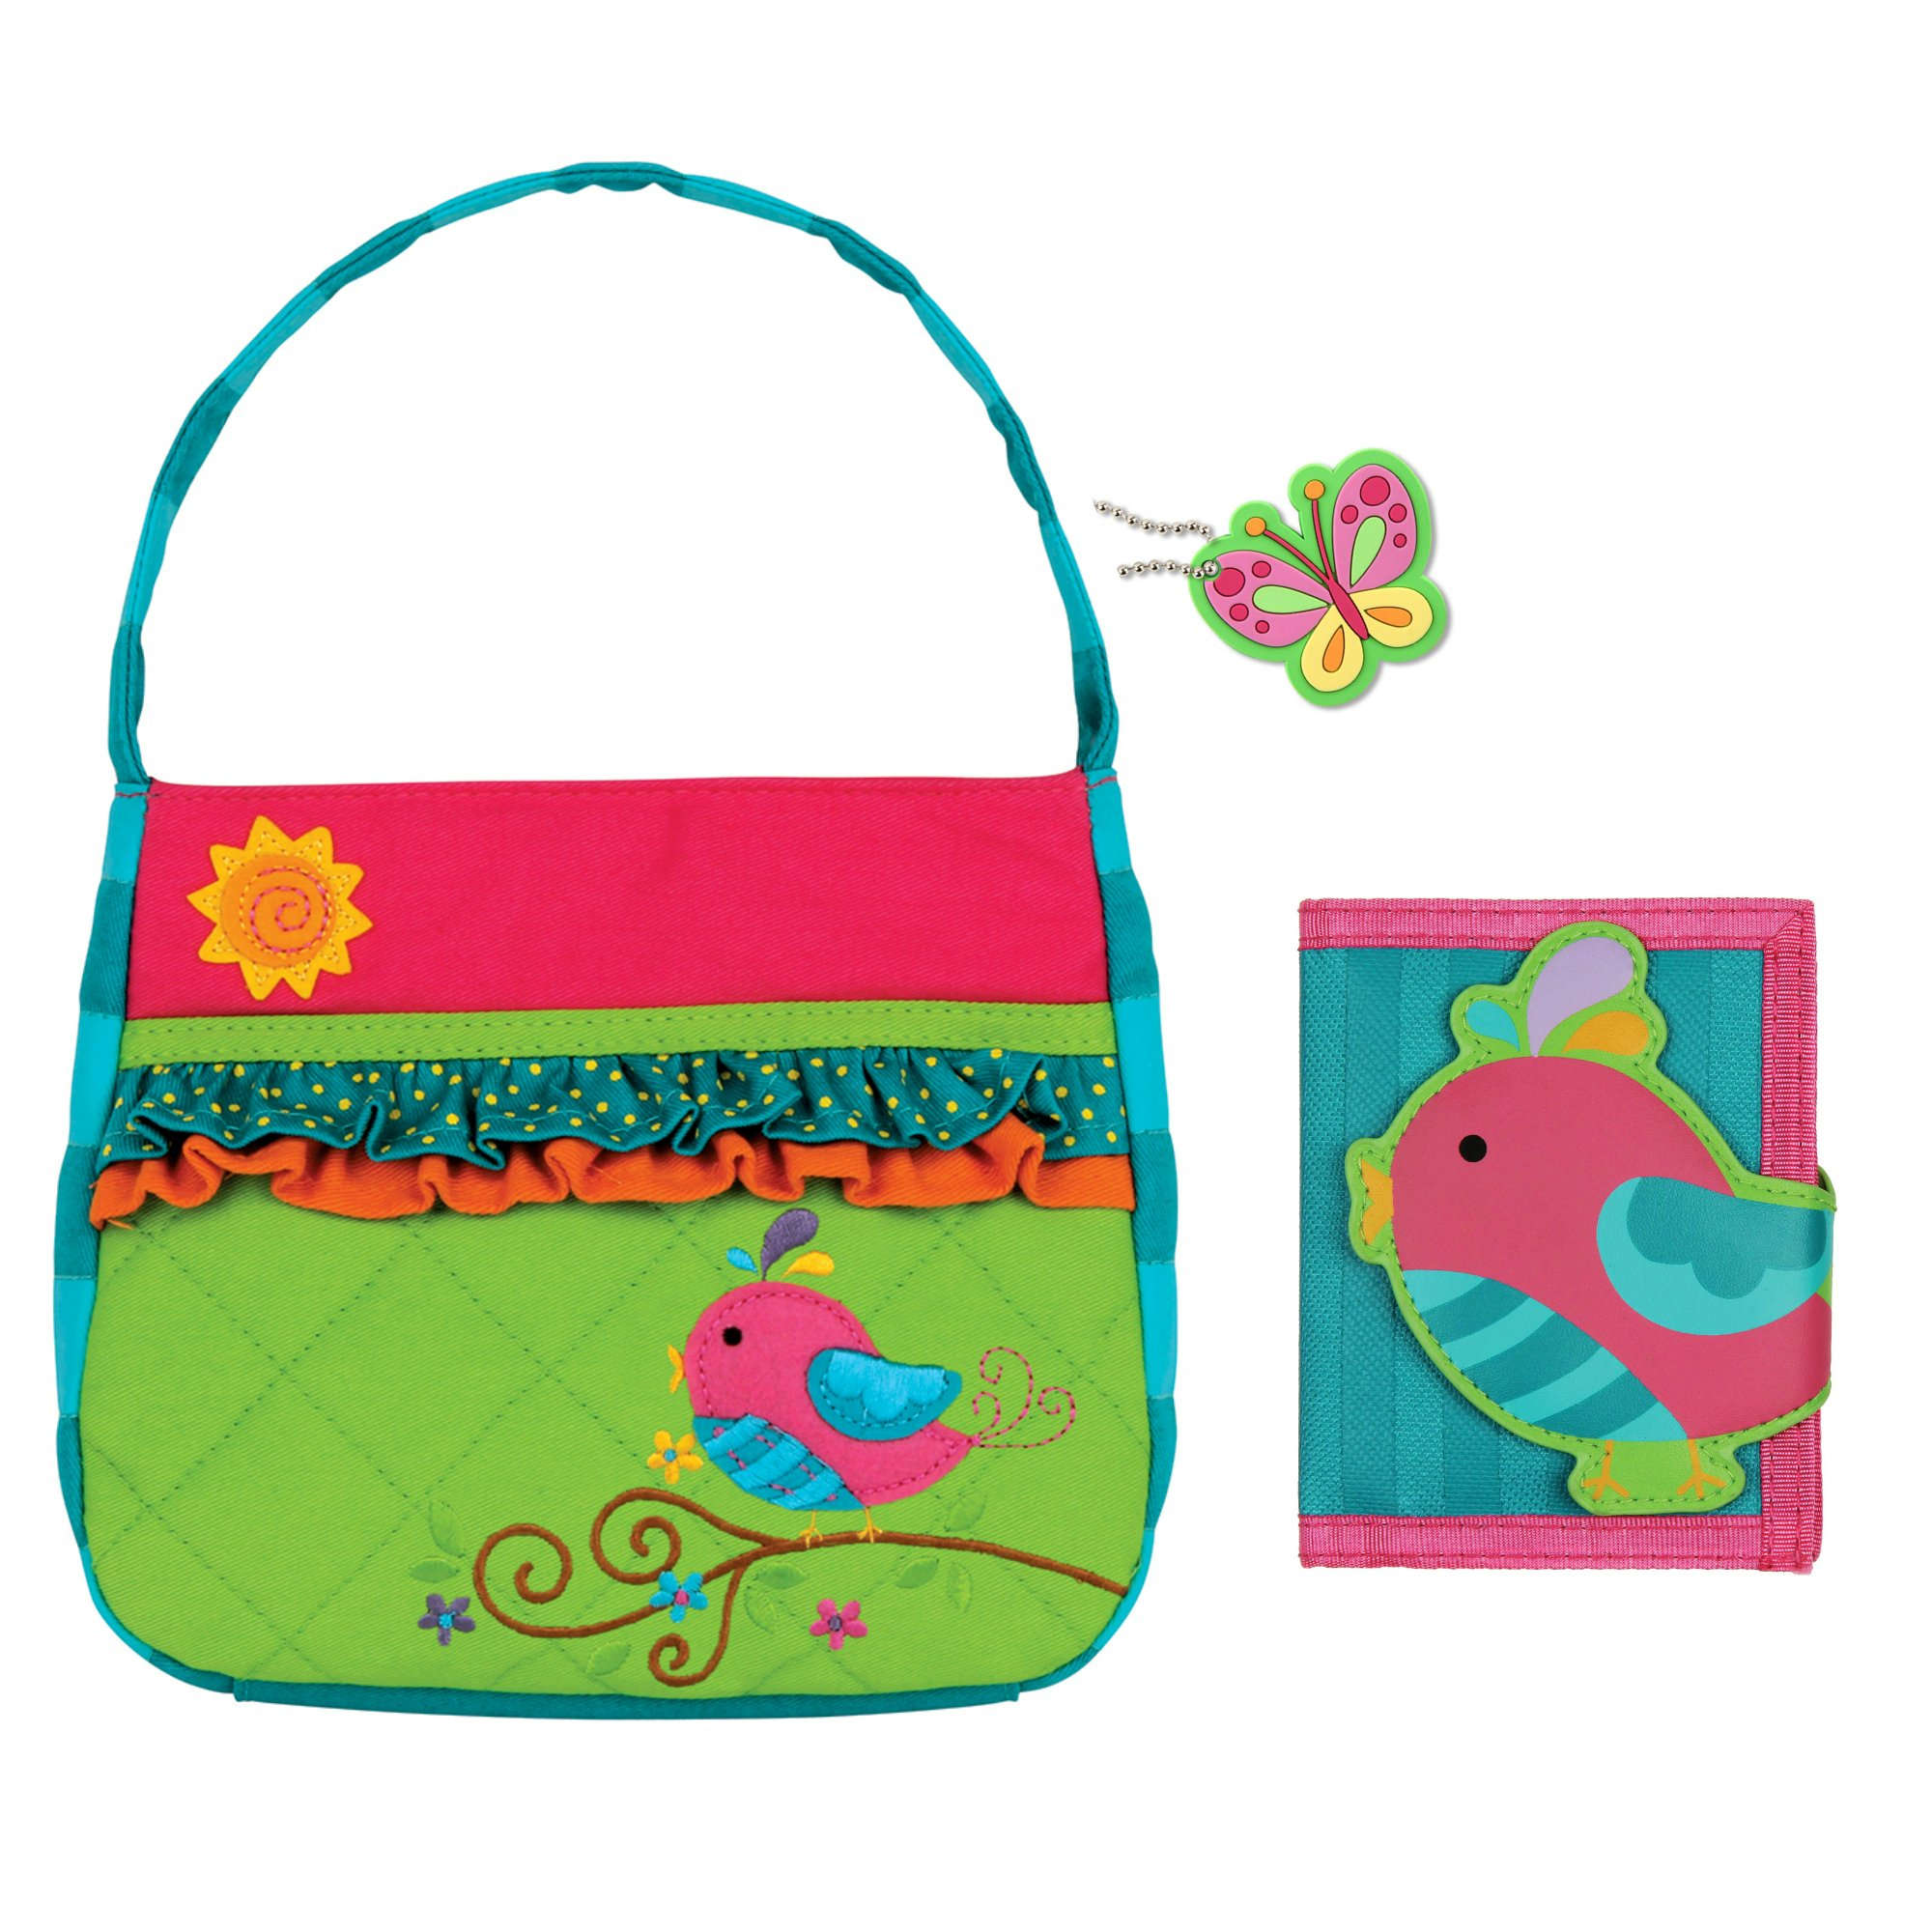 Stephen Joseph Girls Quilted Song Bird Purse and Wallet with Charm by Stephen Joseph (Image #1)